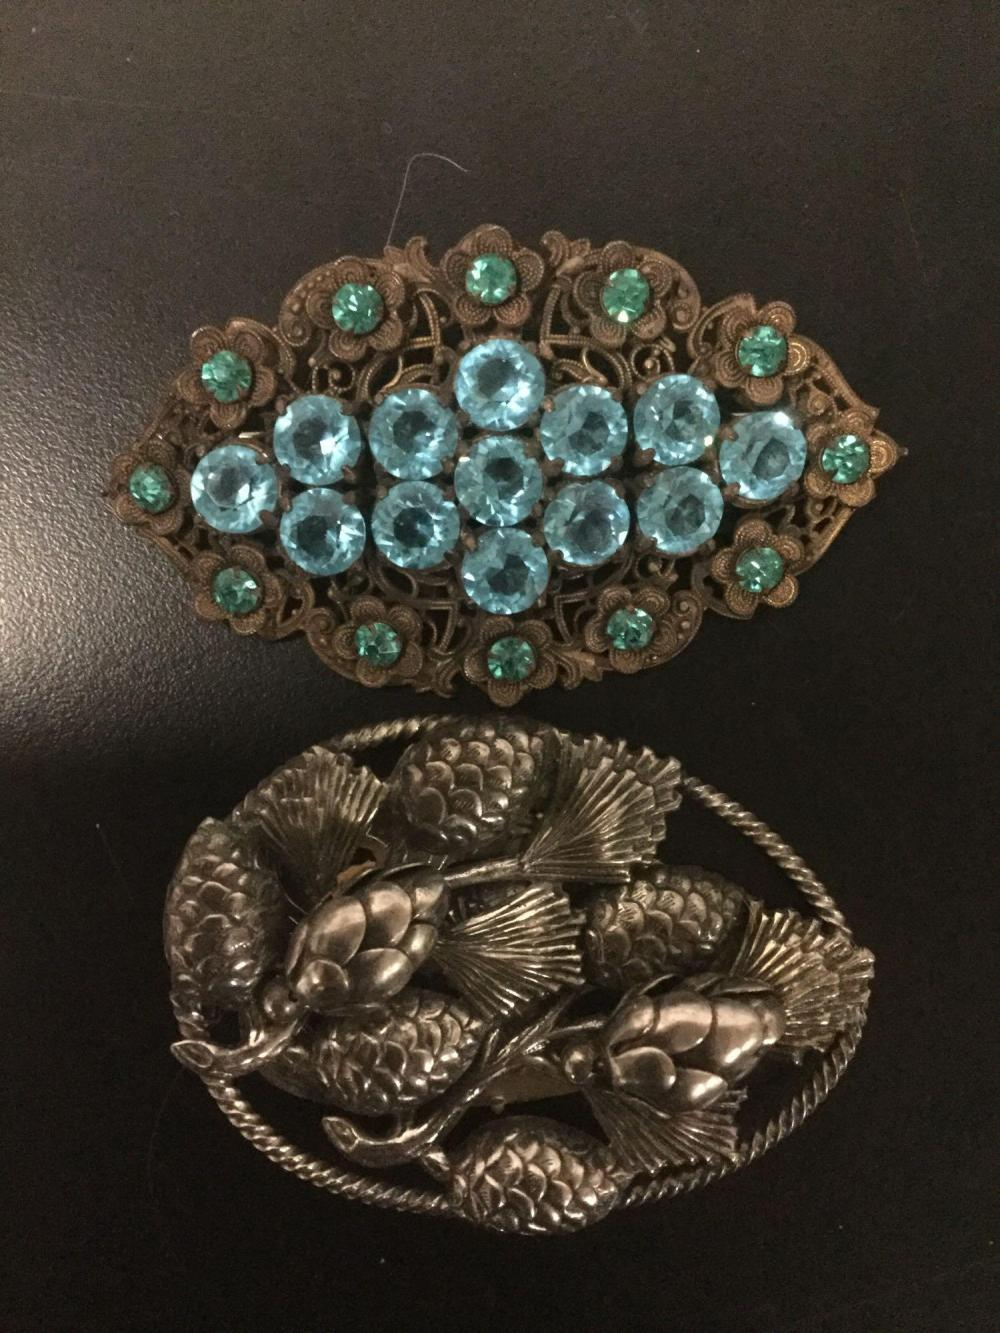 Lot 171: 6 antique & modern costume jewelry brooches with pair of earrings - Monet, Lisner, Simmons, etc